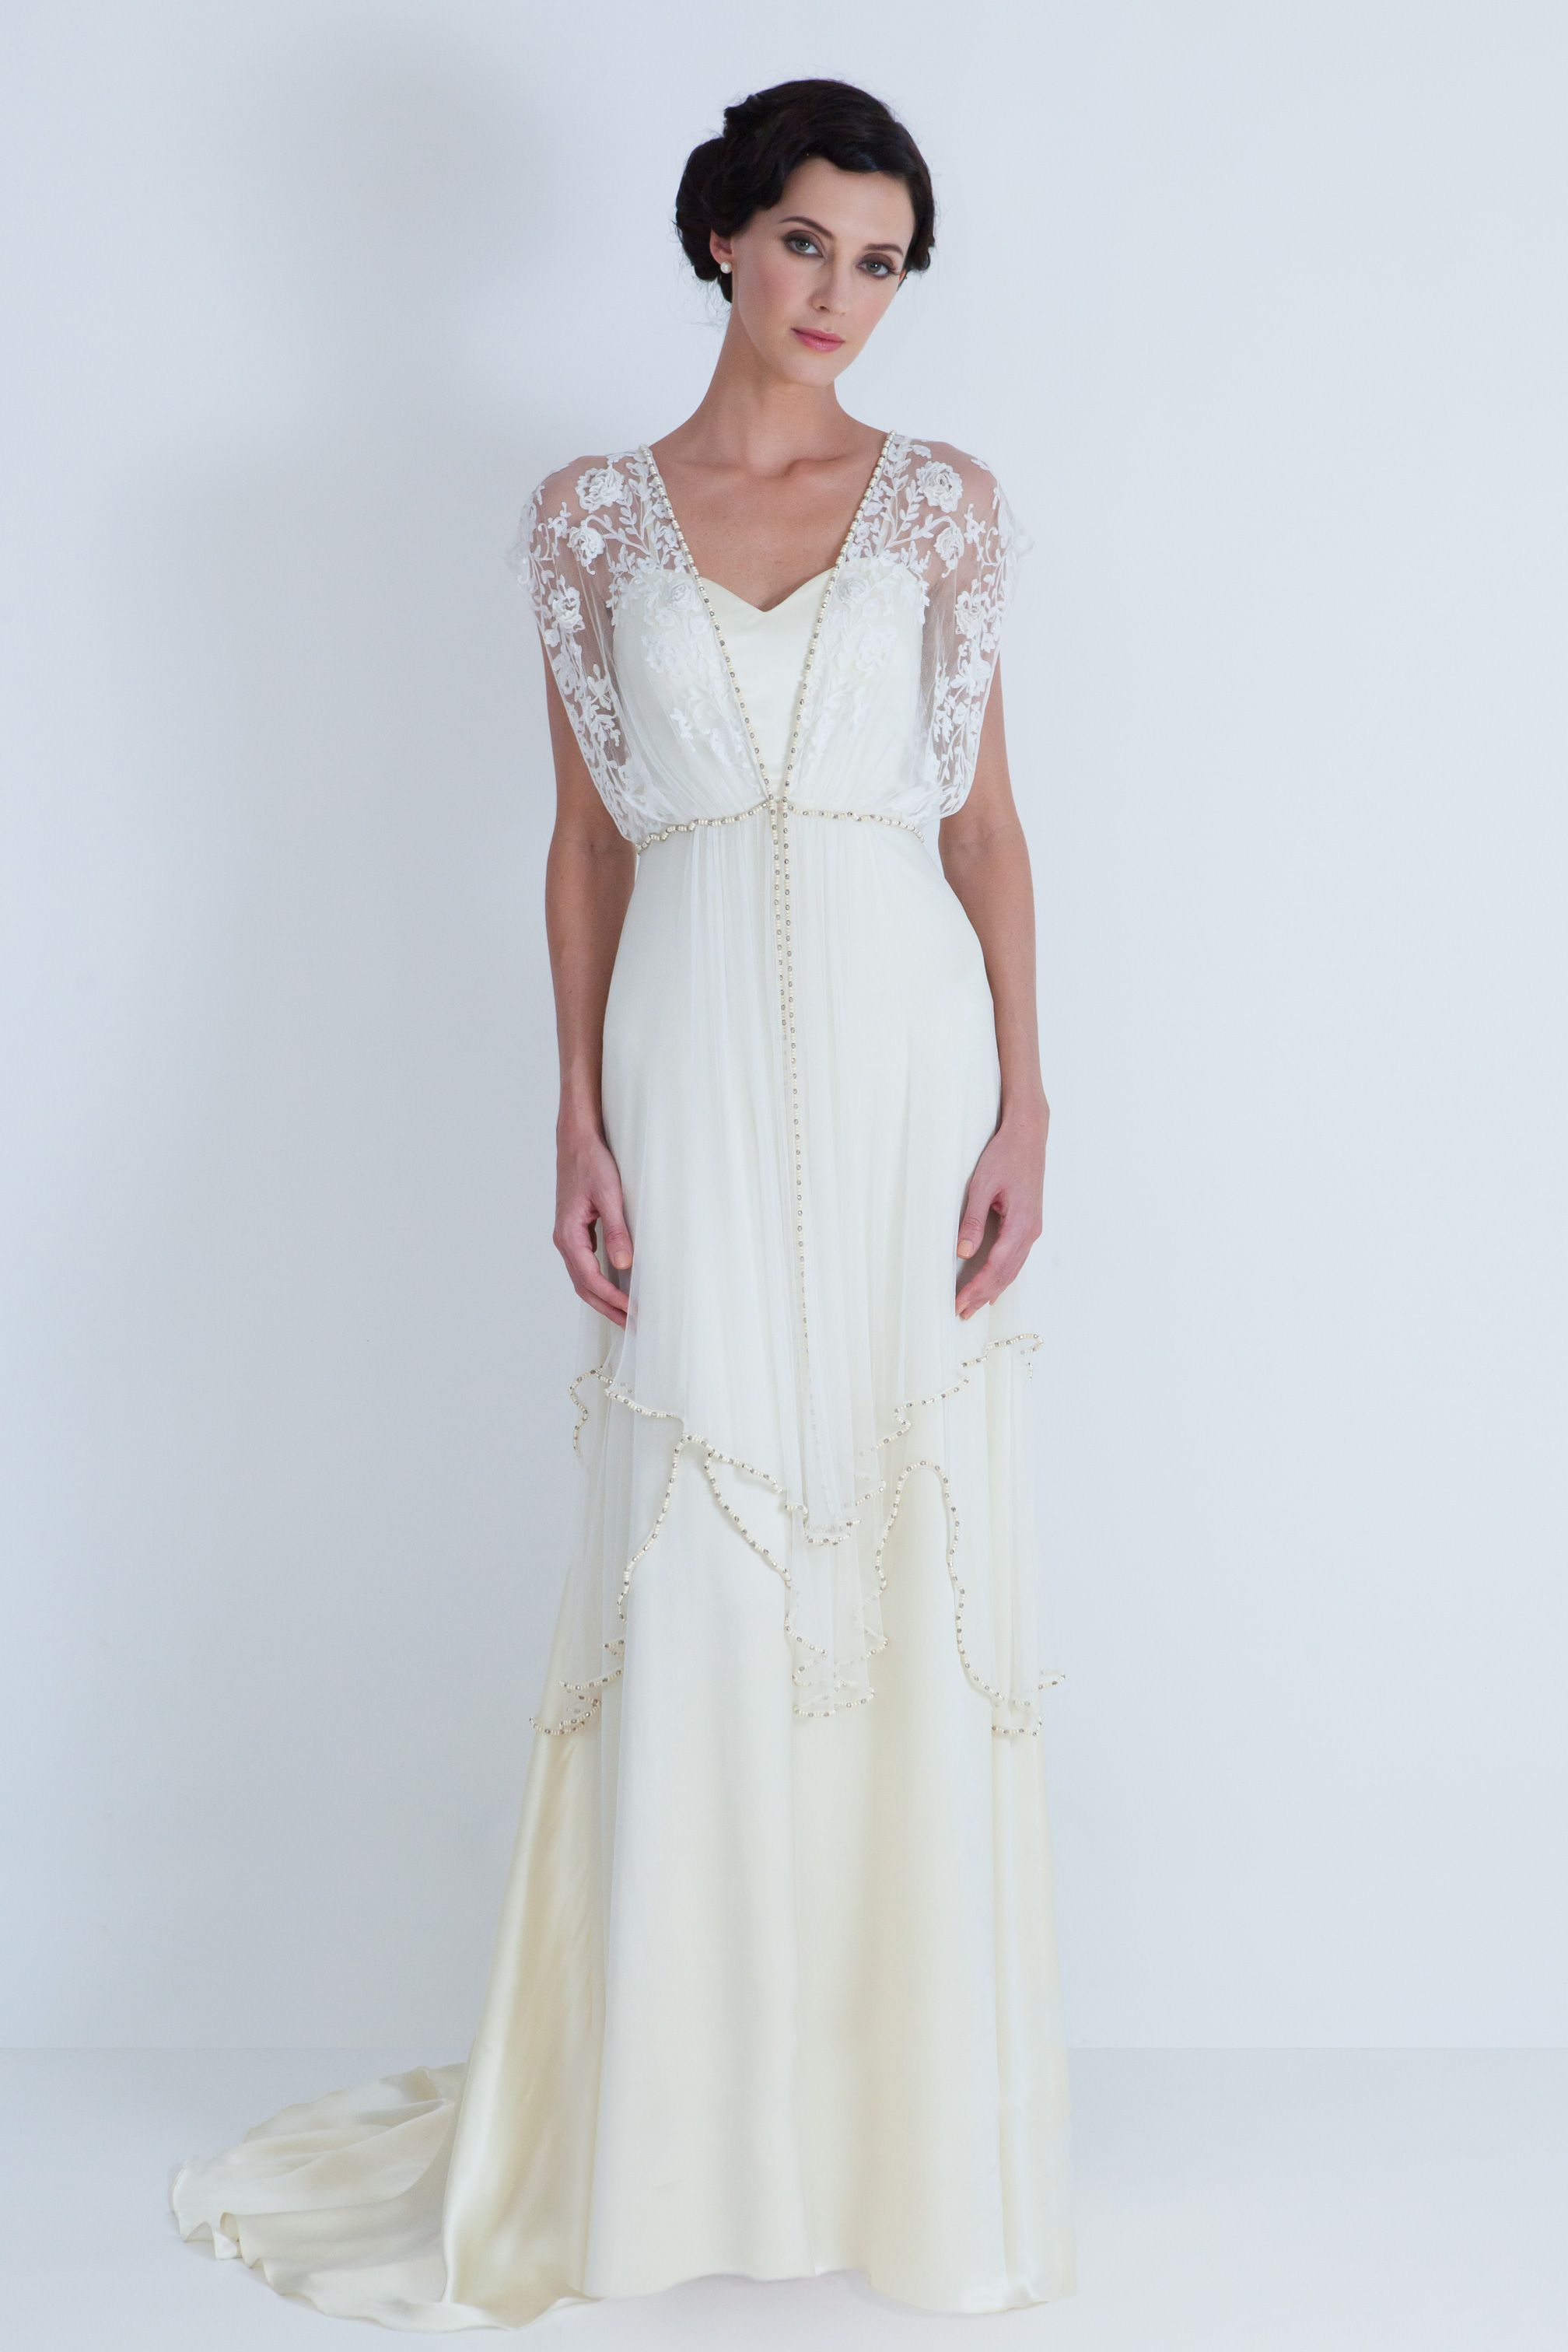 Vintage wedding dresses with sleeves  beautiful vintage dressgown  Wedding  Pinterest  Vintage dresses